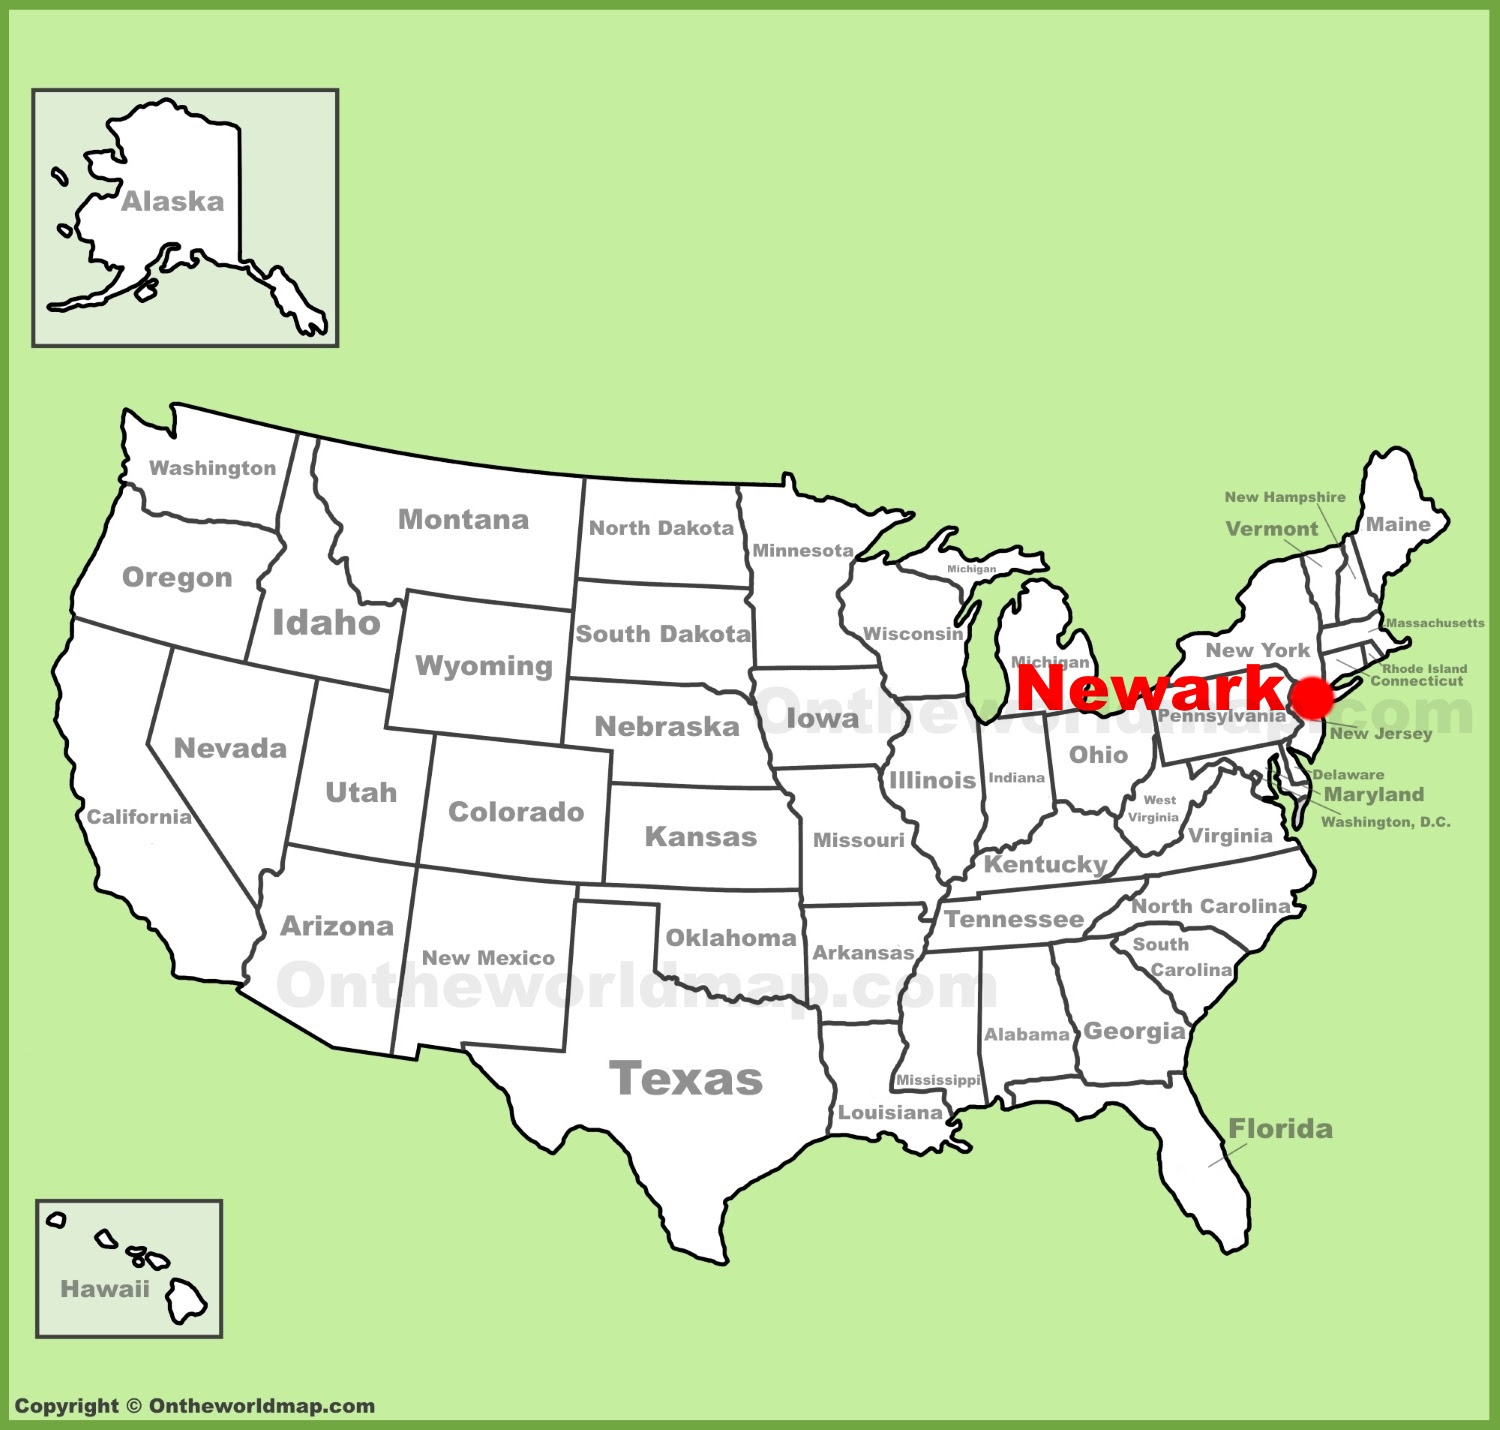 newark location on the us map